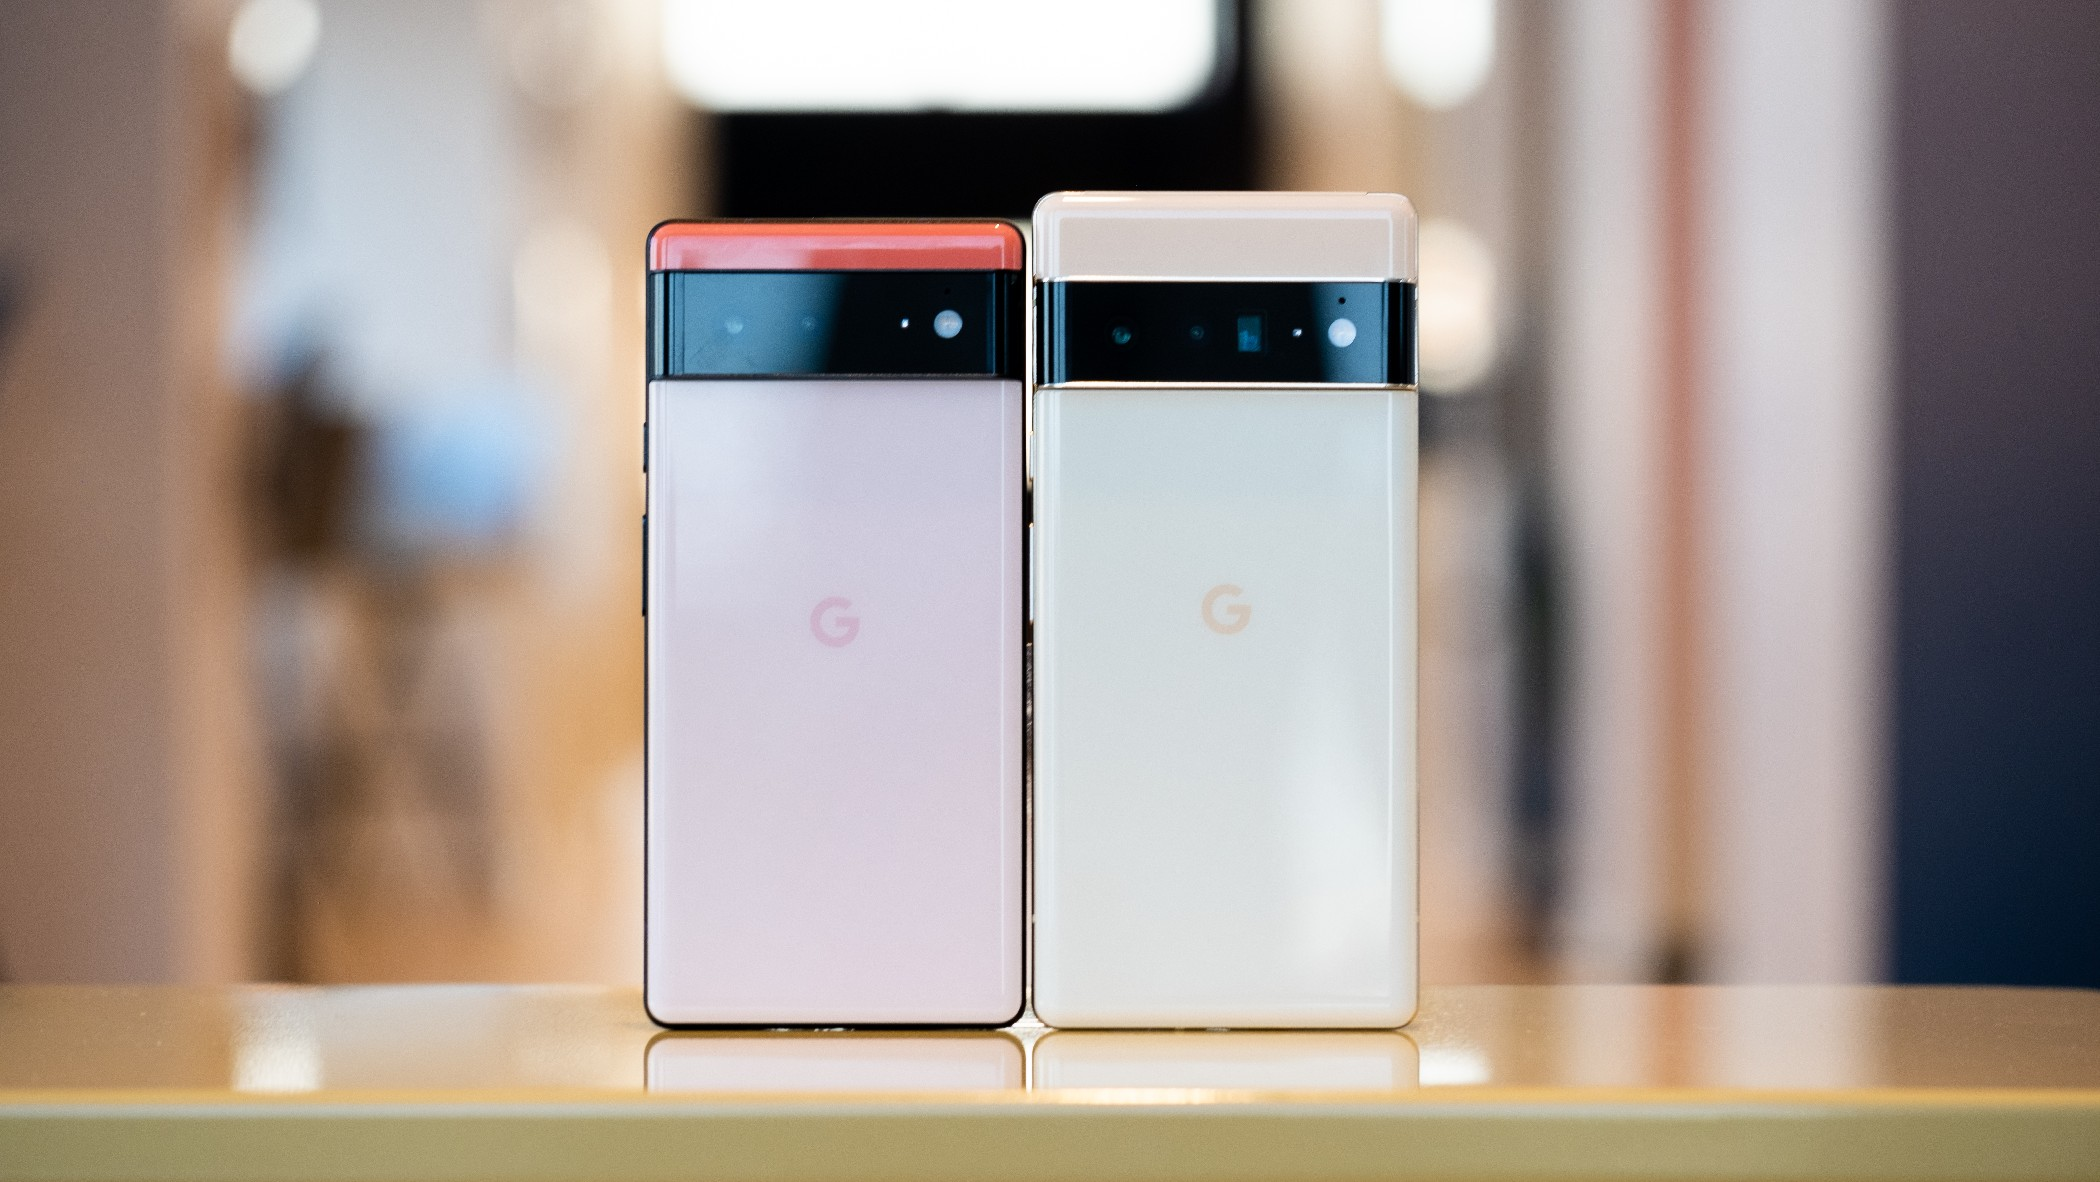 The Google Pixel 6 and 6 Pro on a table with their rear cameras facing out.